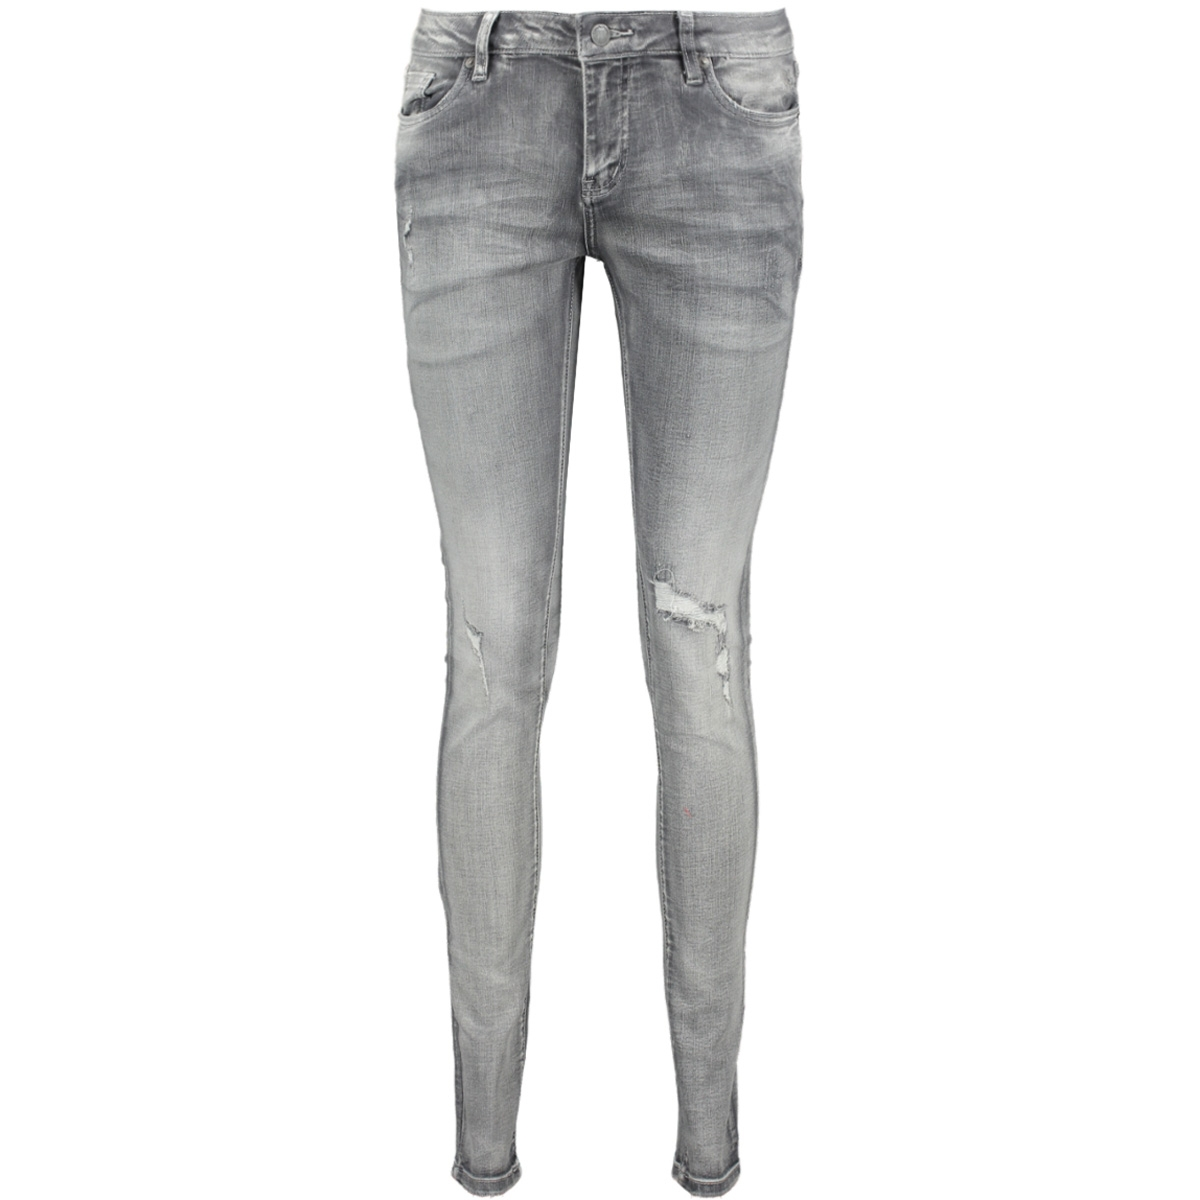 poppy s19 12 1345 circle of trust jeans 1345 light charcoal